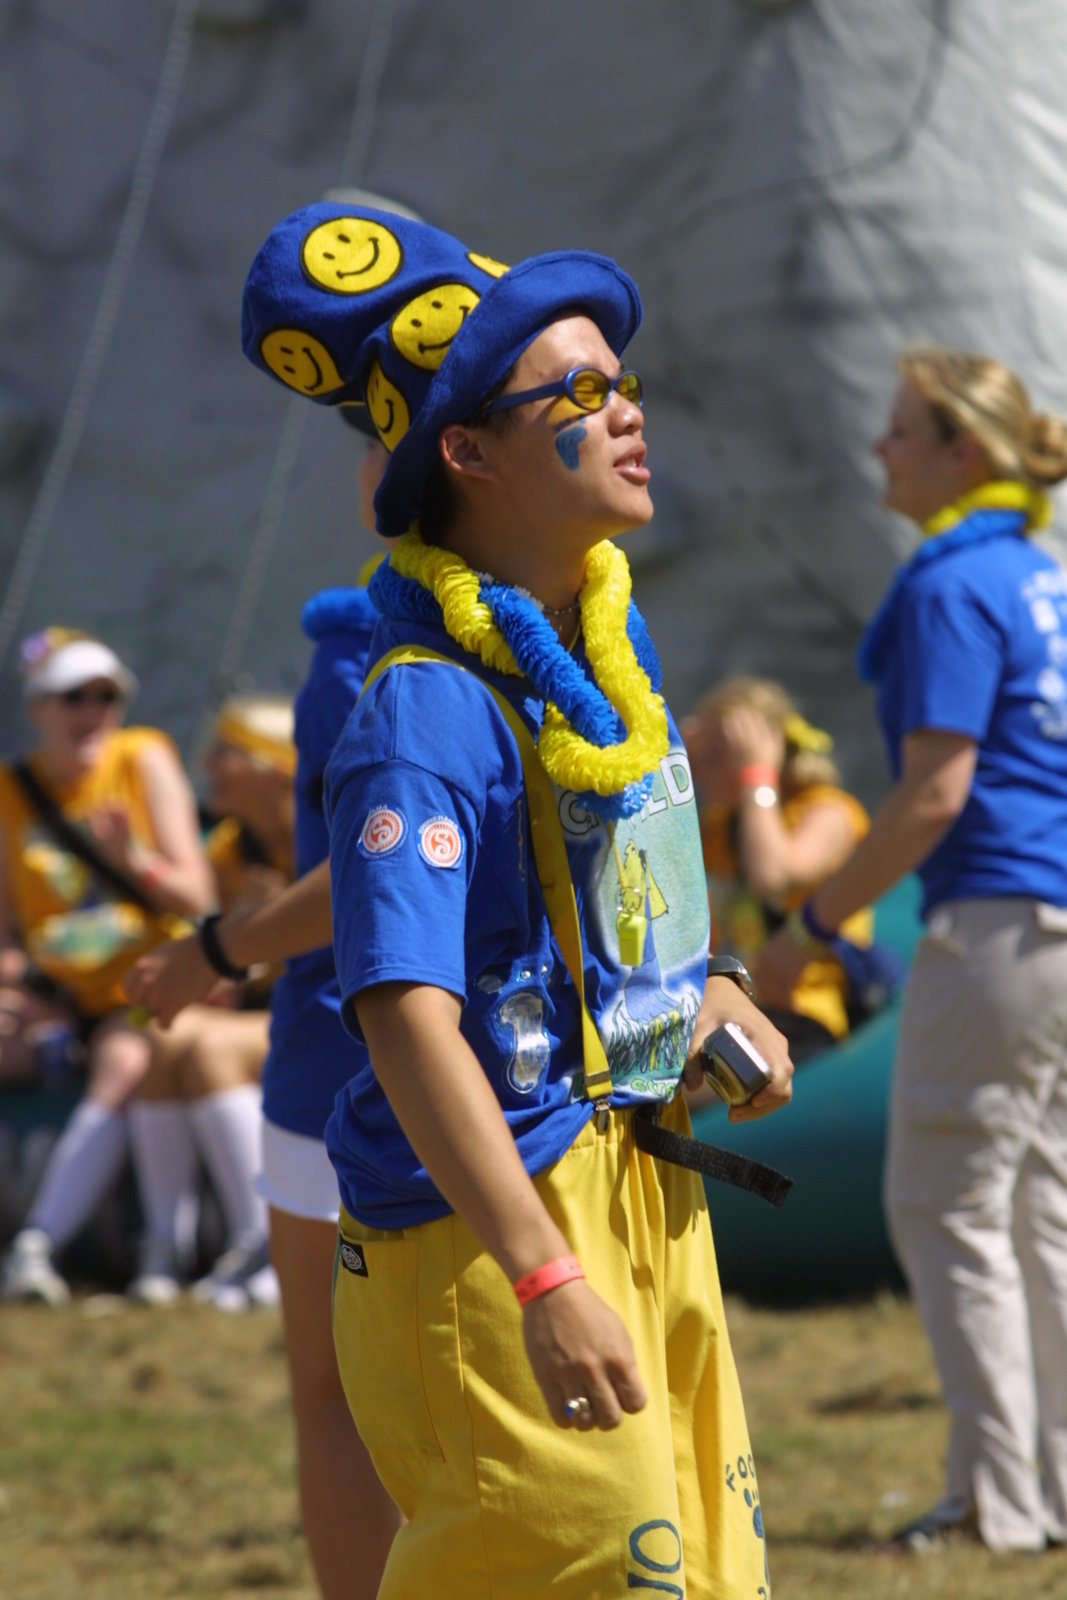 Student participating in Orientation Week 2002 at Wilfrid Laurier University